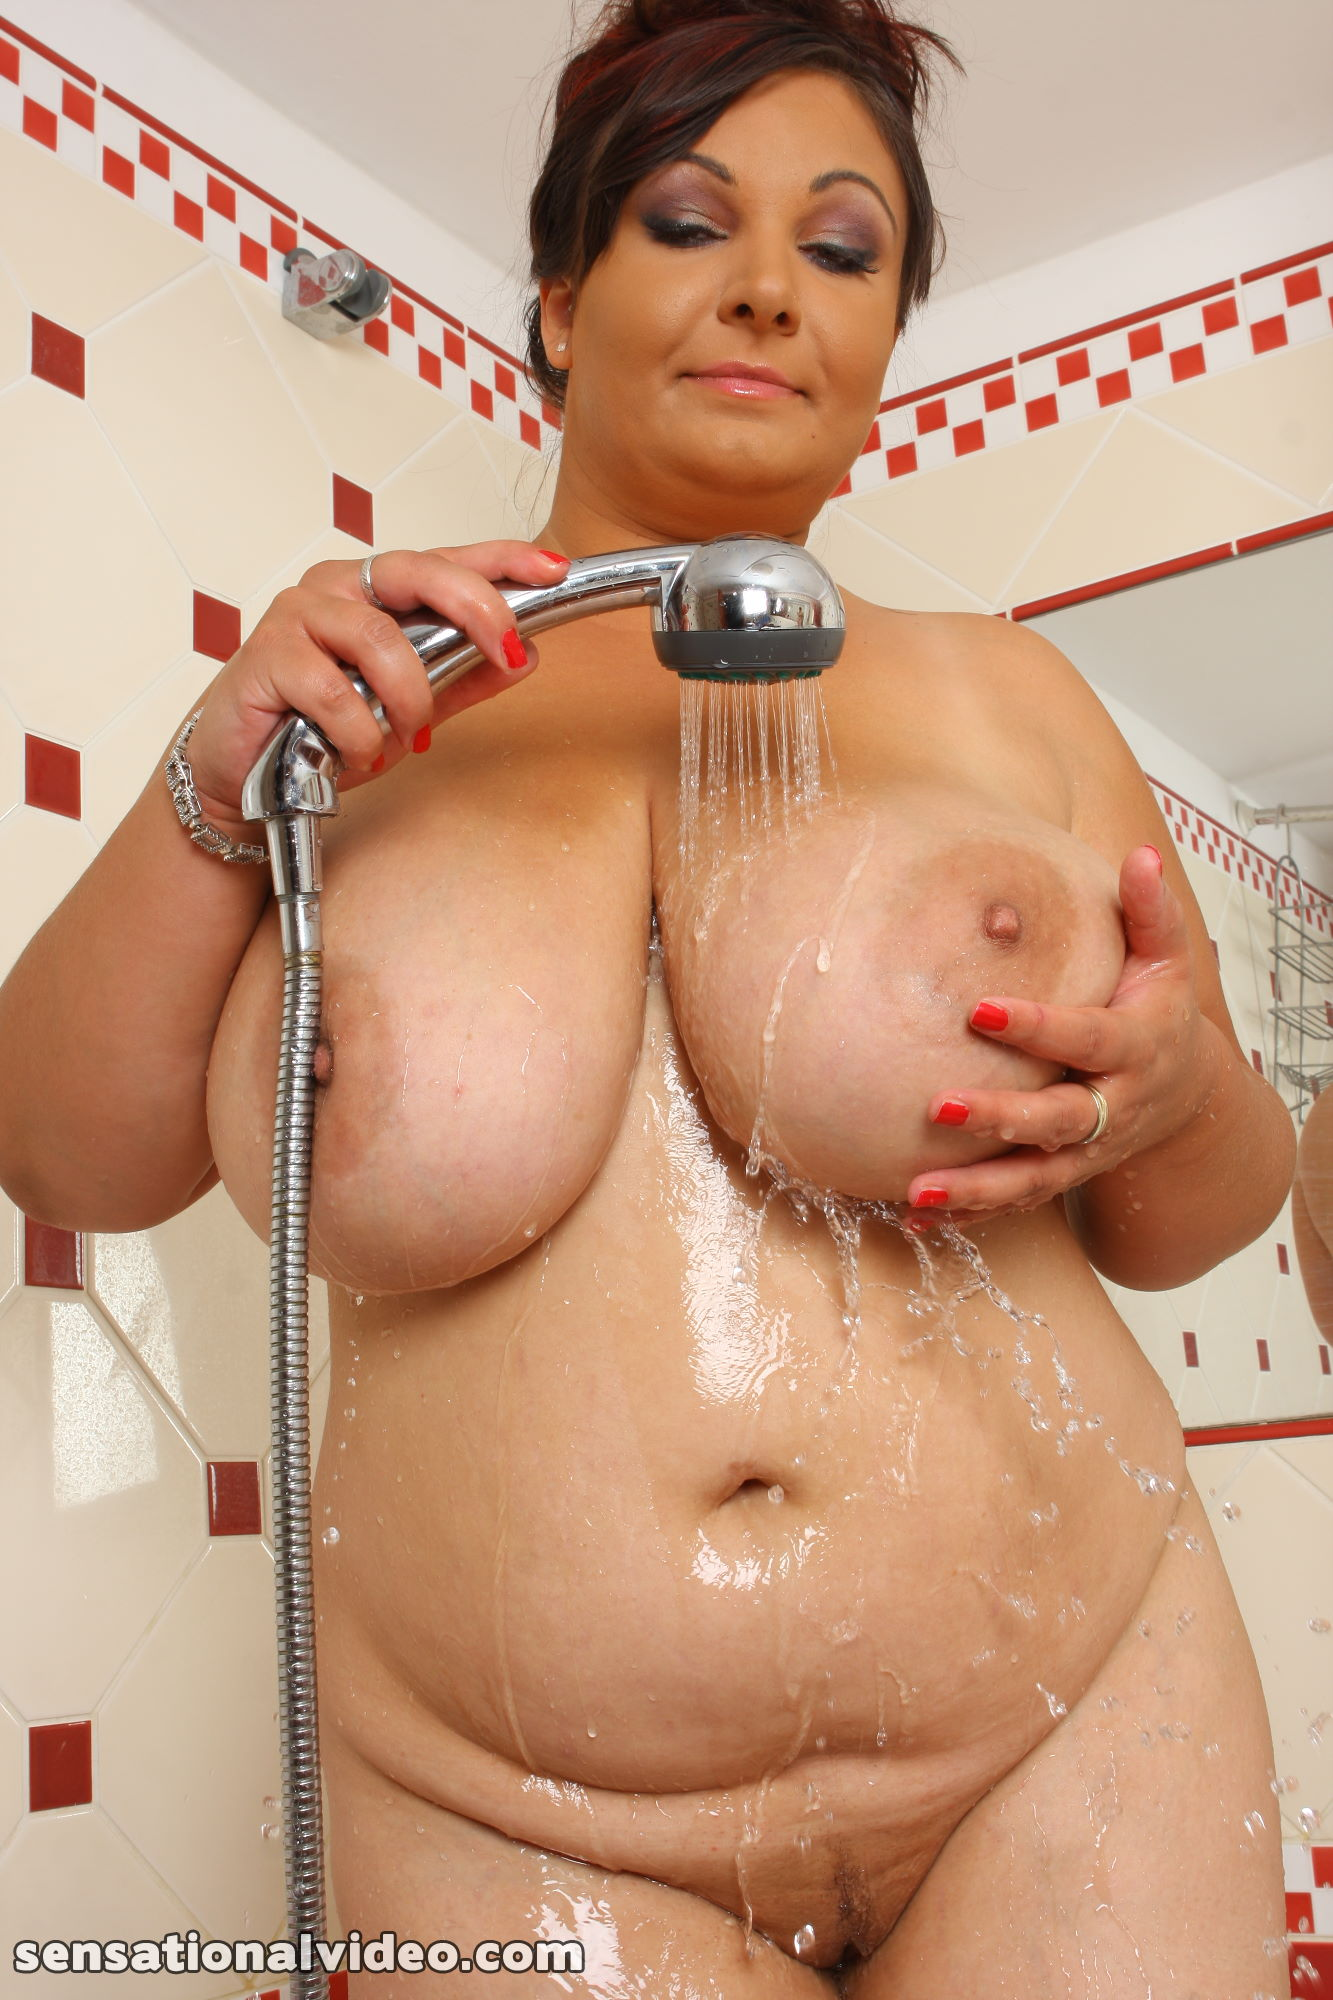 lesgalls spicytitties plumperpass gal667 pic 15